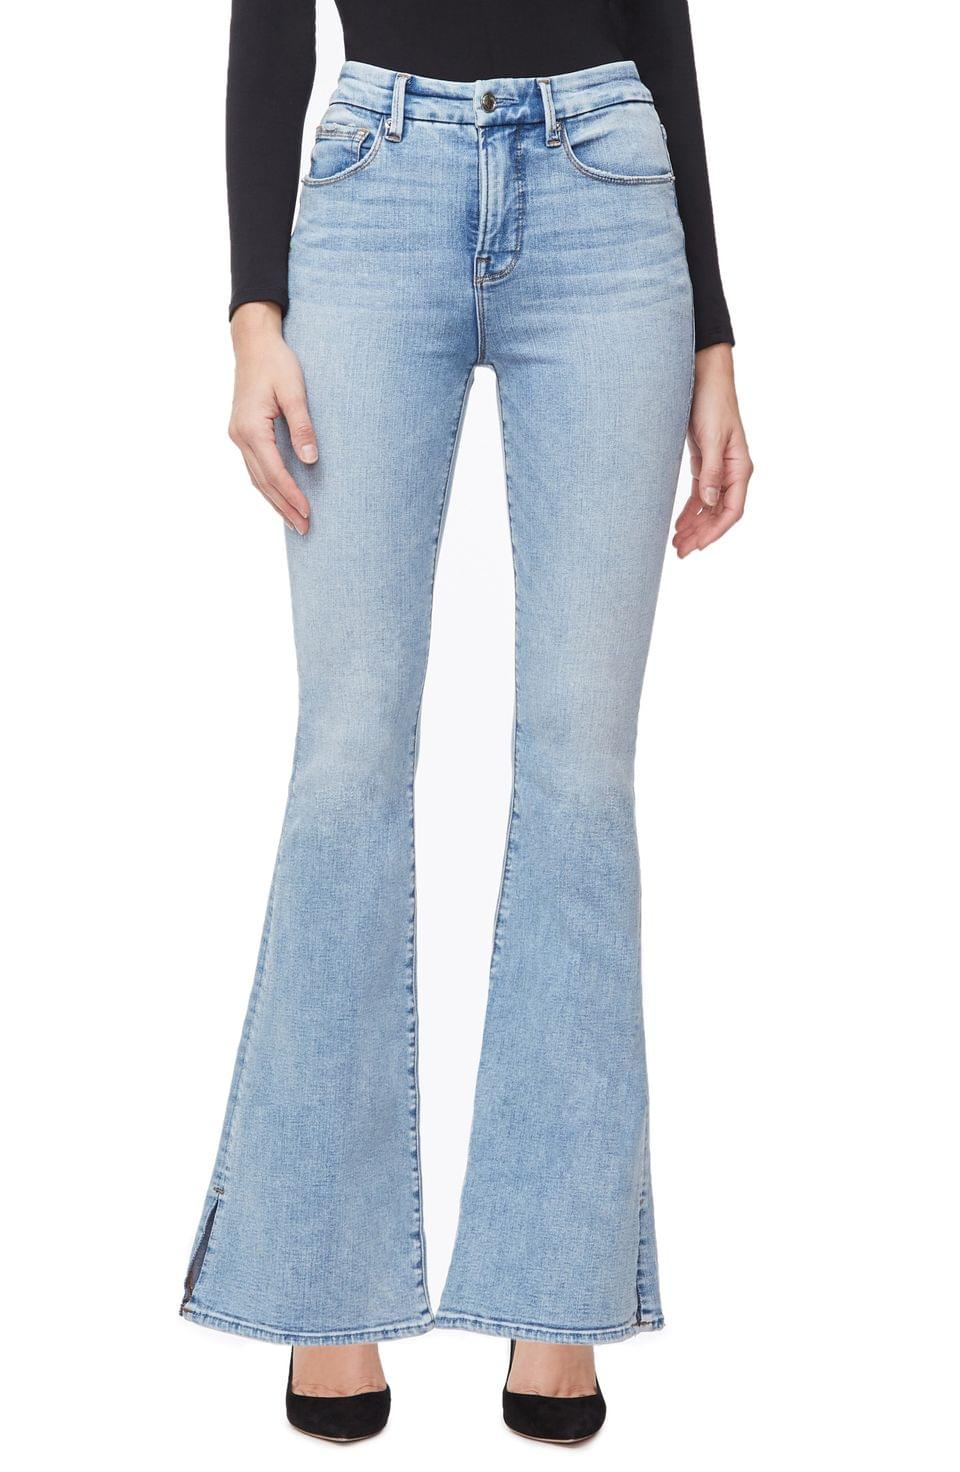 Women's Good American Good Flare Jeans (Regular & Plus Size)